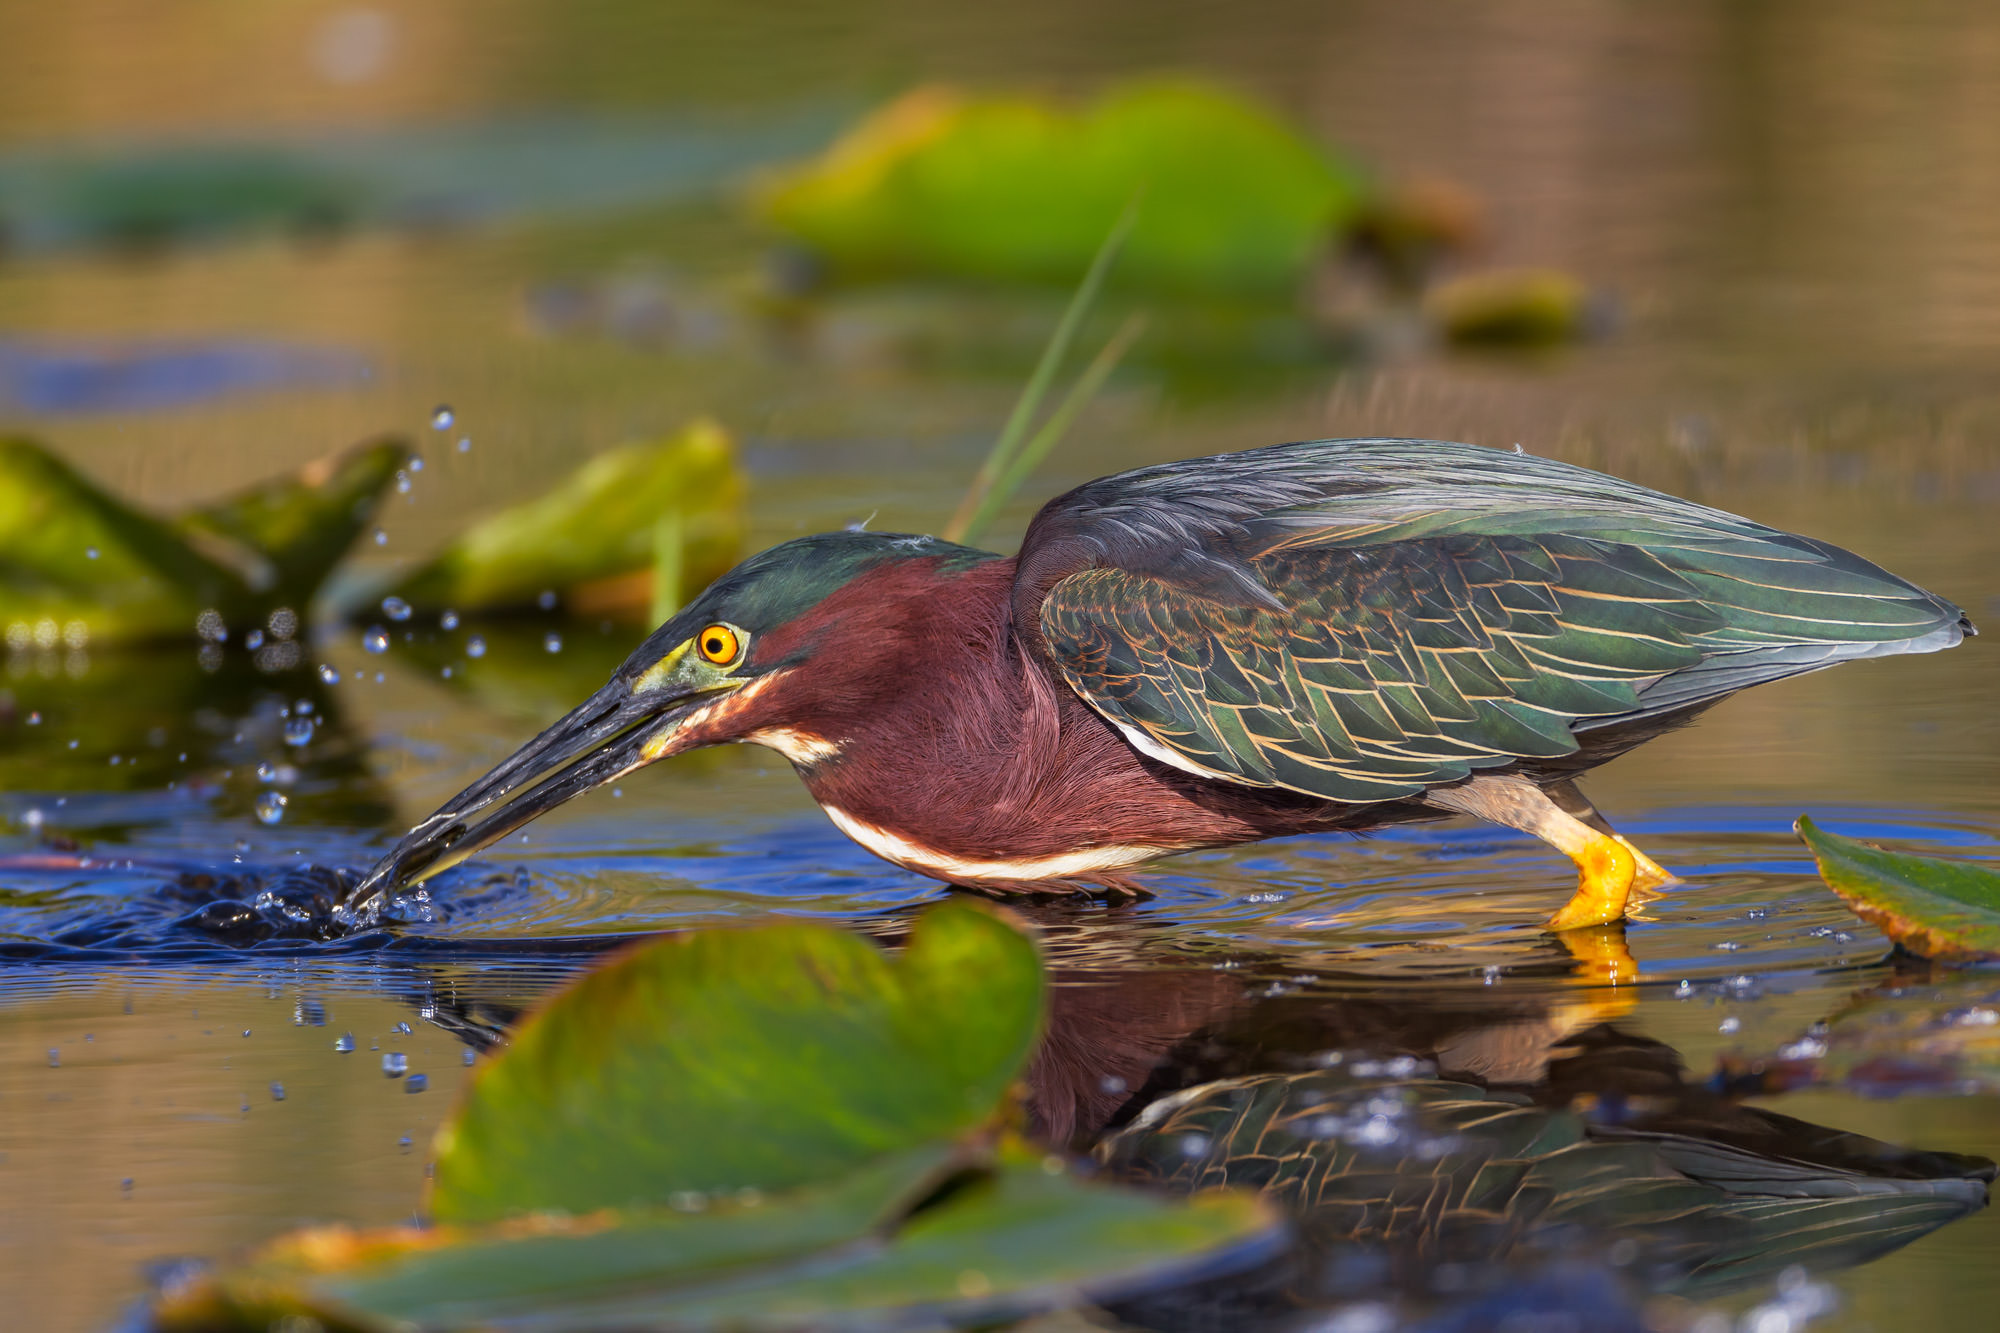 Heron, Green Heron, Florida, photo